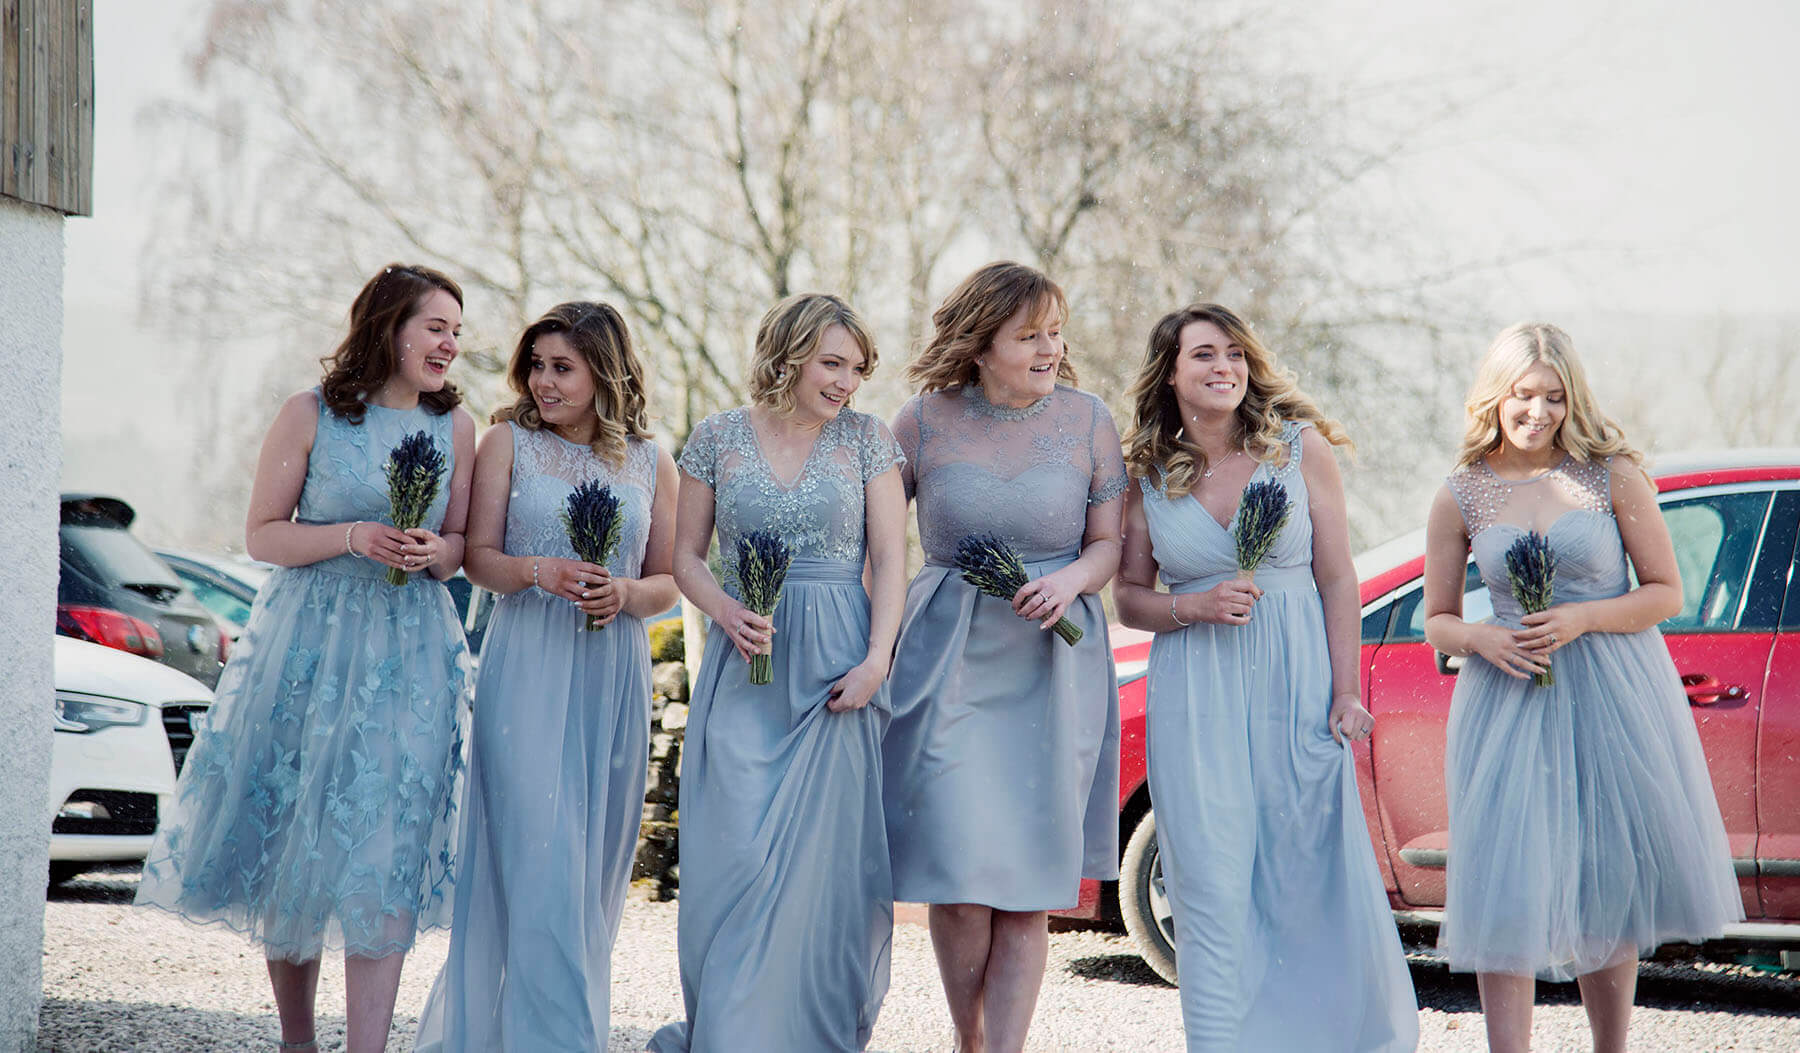 Bridesmaids walking in a row holding bouquets